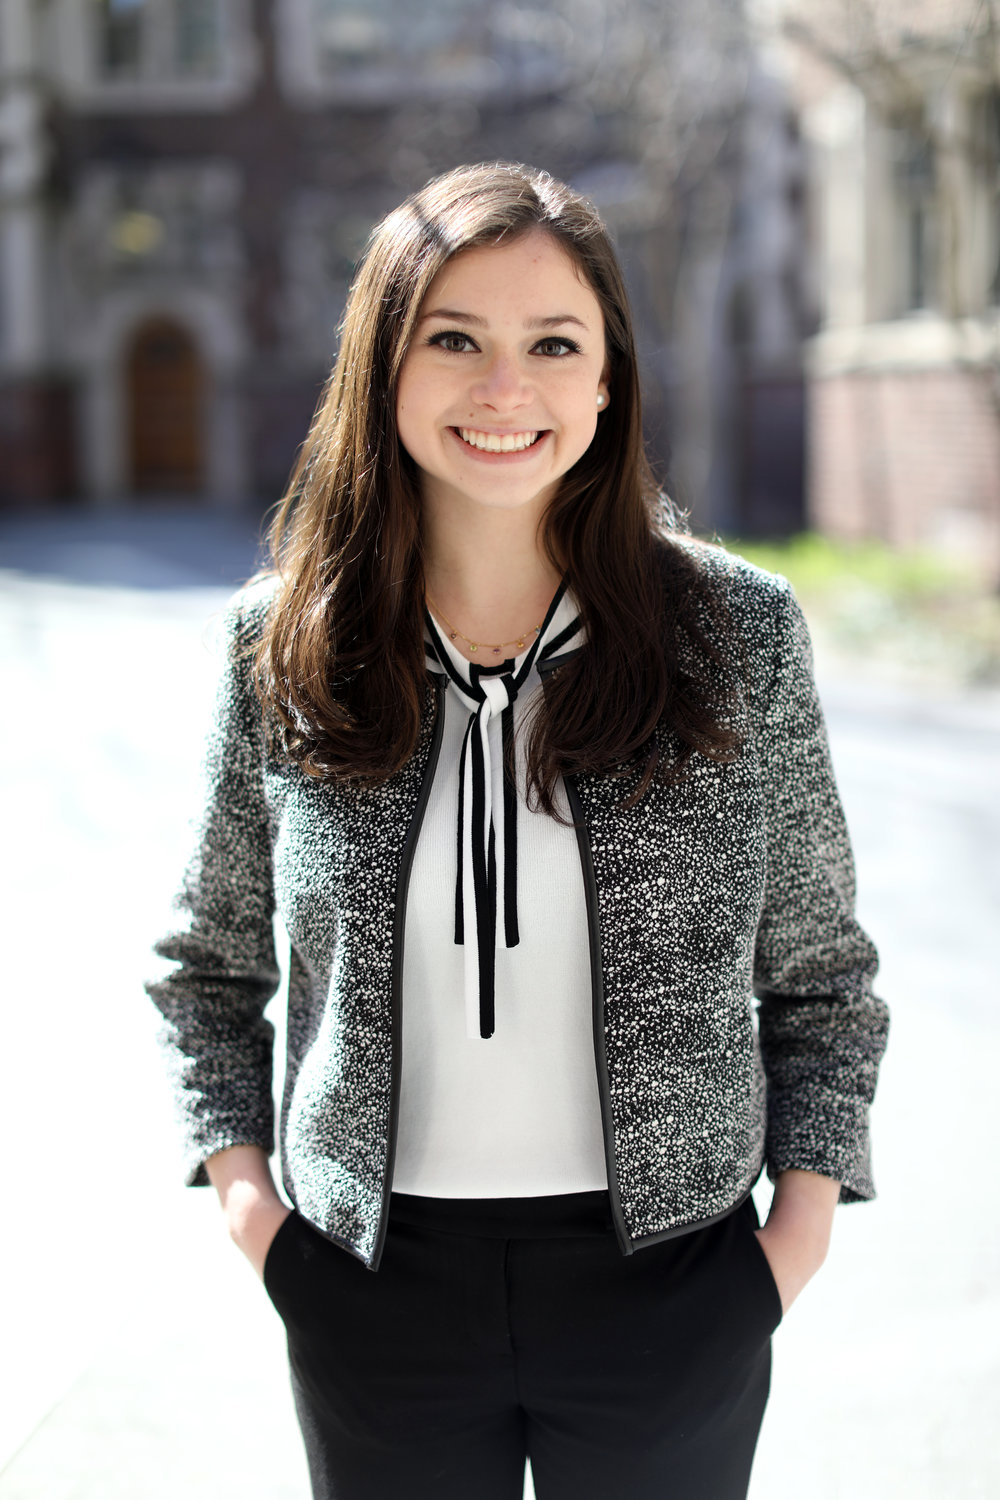 "Audrey Goldberg - Vice President of FinanceAudrey Goldberg (Class of 2019) is from Yardley, Pennsylvania and plans to pursue Marketing, Operations, Management, and Social Impact and Responsibility at Wharton. After serving as the Vice President of Membership Development (2016), and as President (2017), she is excited and honored to be serving on the executive board as the Vice President of Finance. Audrey is looking forward to continuing to oversee the ""Wharton Women Allies"" committee: a group of passionate individuals with the mission of educating undergraduates and encouraging gender equality in the workplace. In addition to her involvement in Wharton Women, Audrey is a Community Director in Cohorts. Feel free to reach out to her at augold@wharton.upenn.edu."